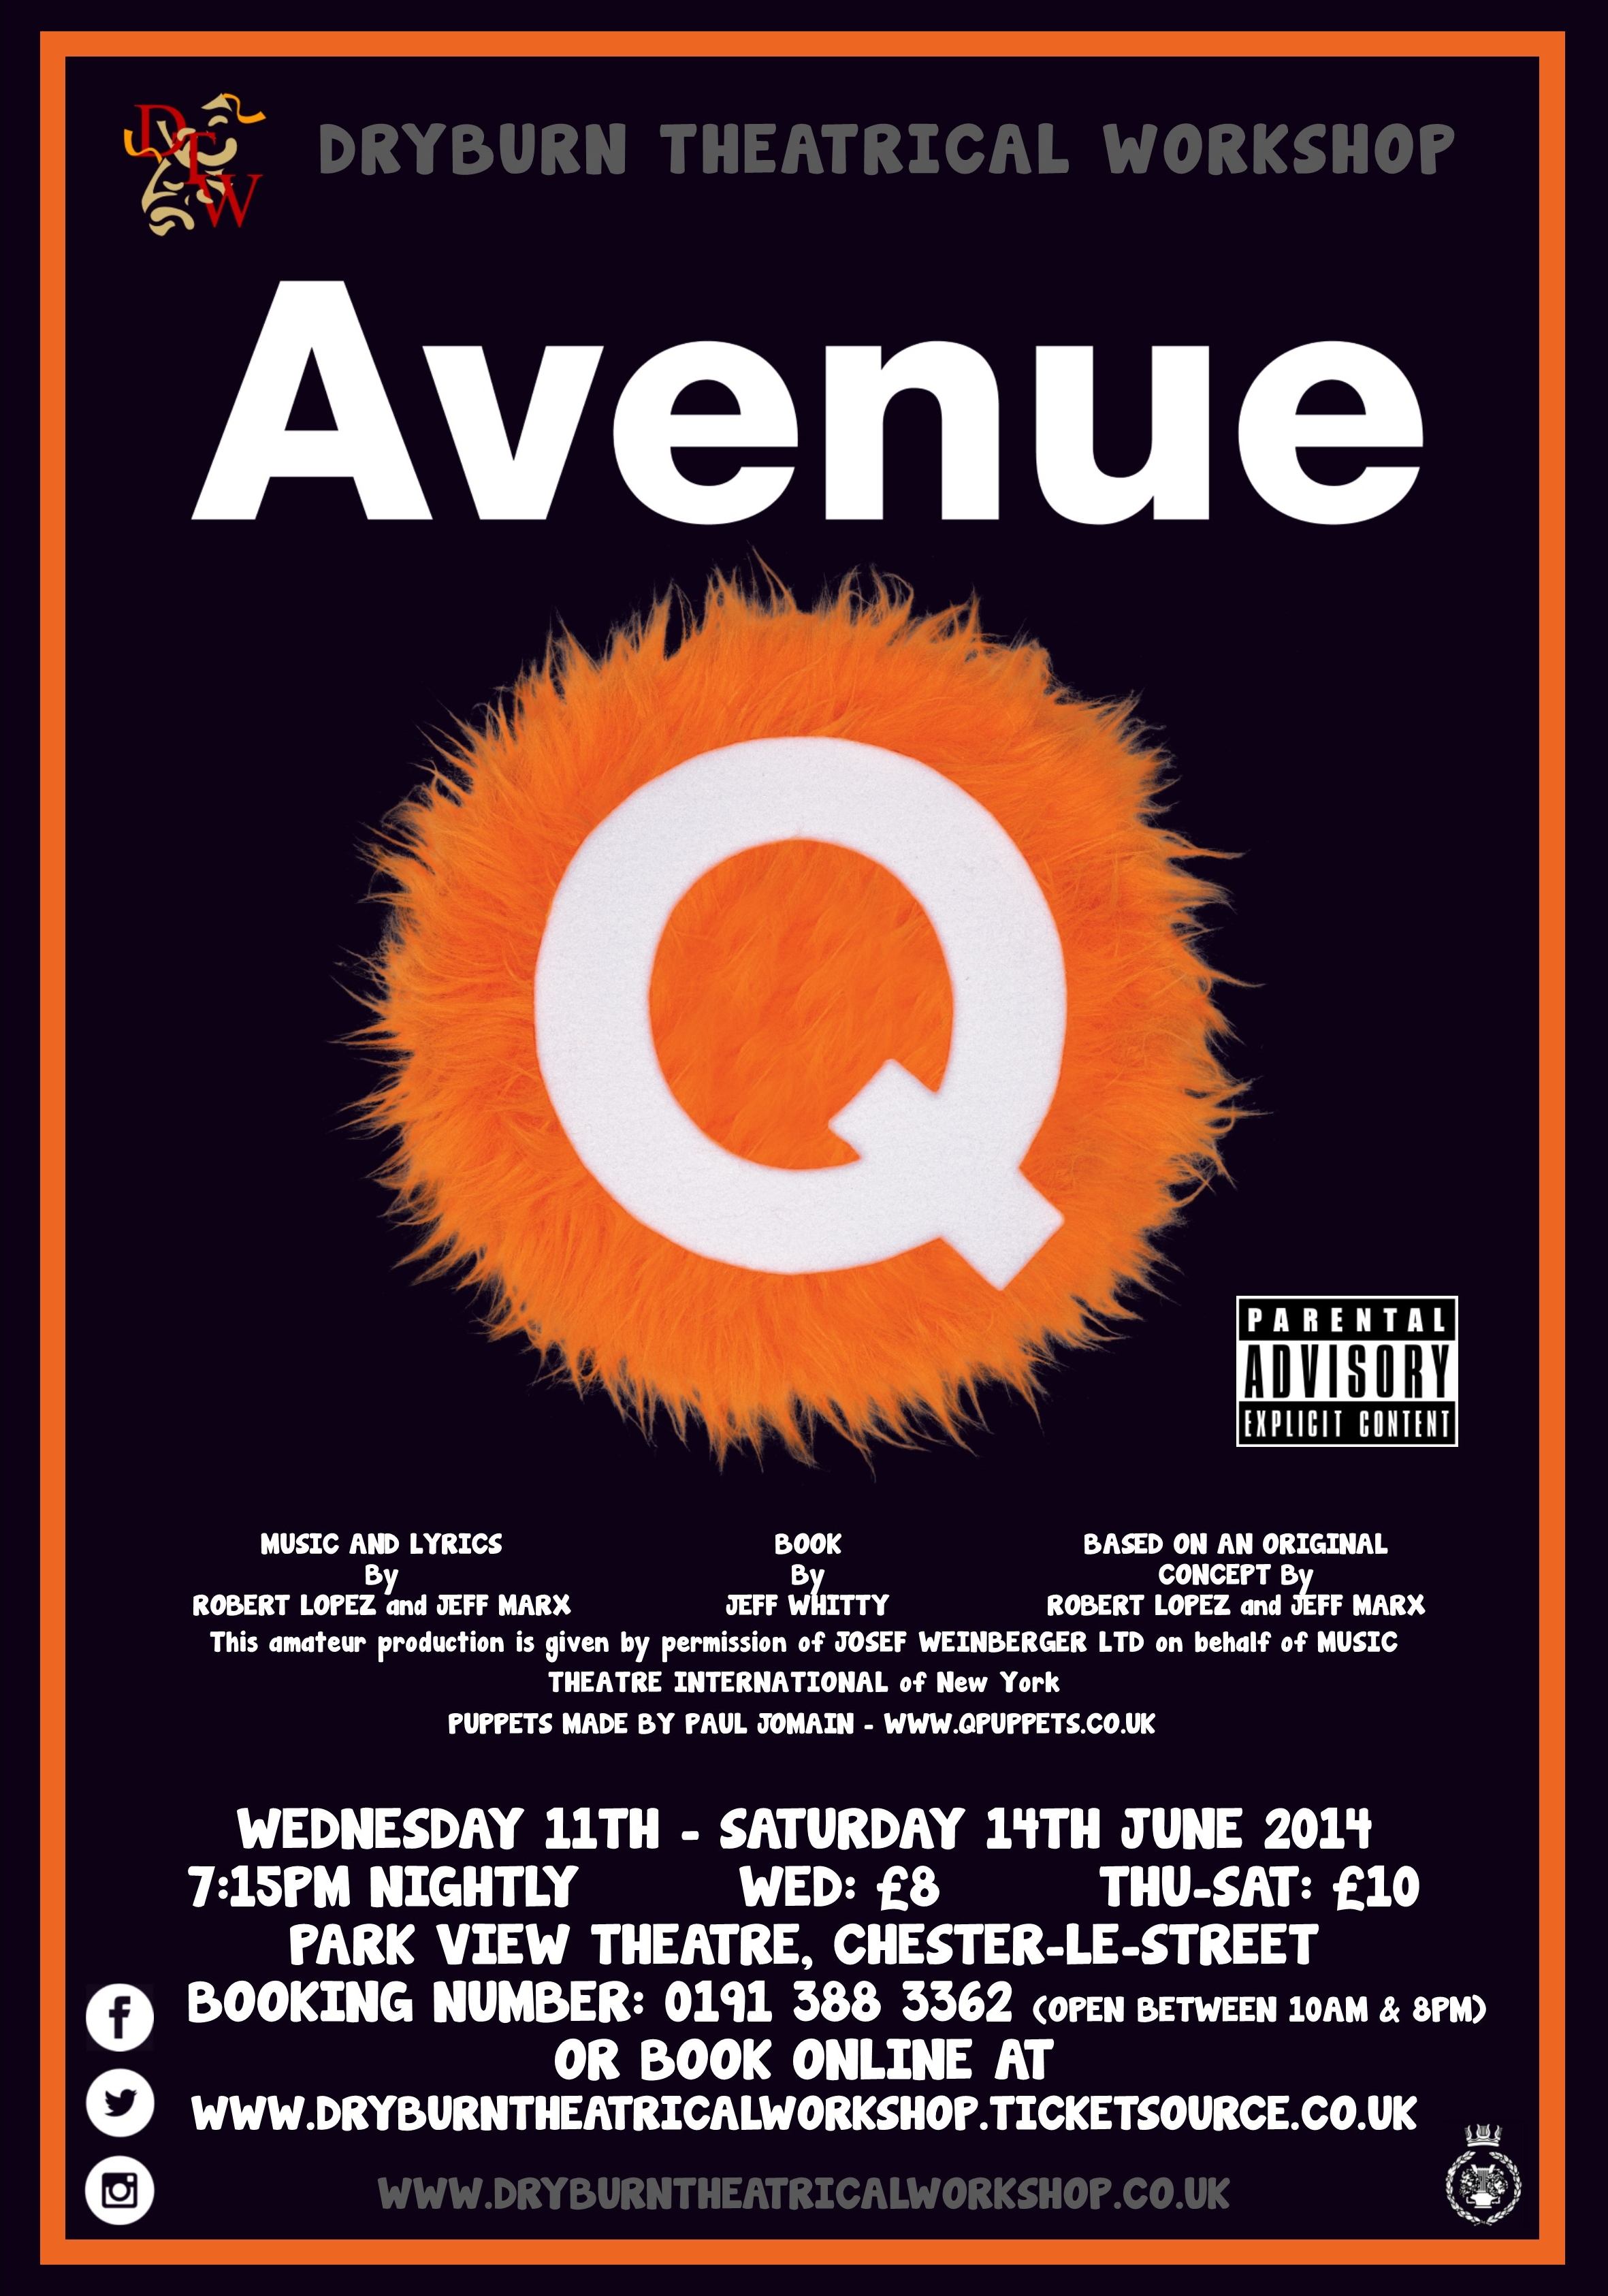 """AND AT THE END OF THE DAY, THERE'S NO WHERE TO GO, BUT HOME TO AVENUE Q."" -"